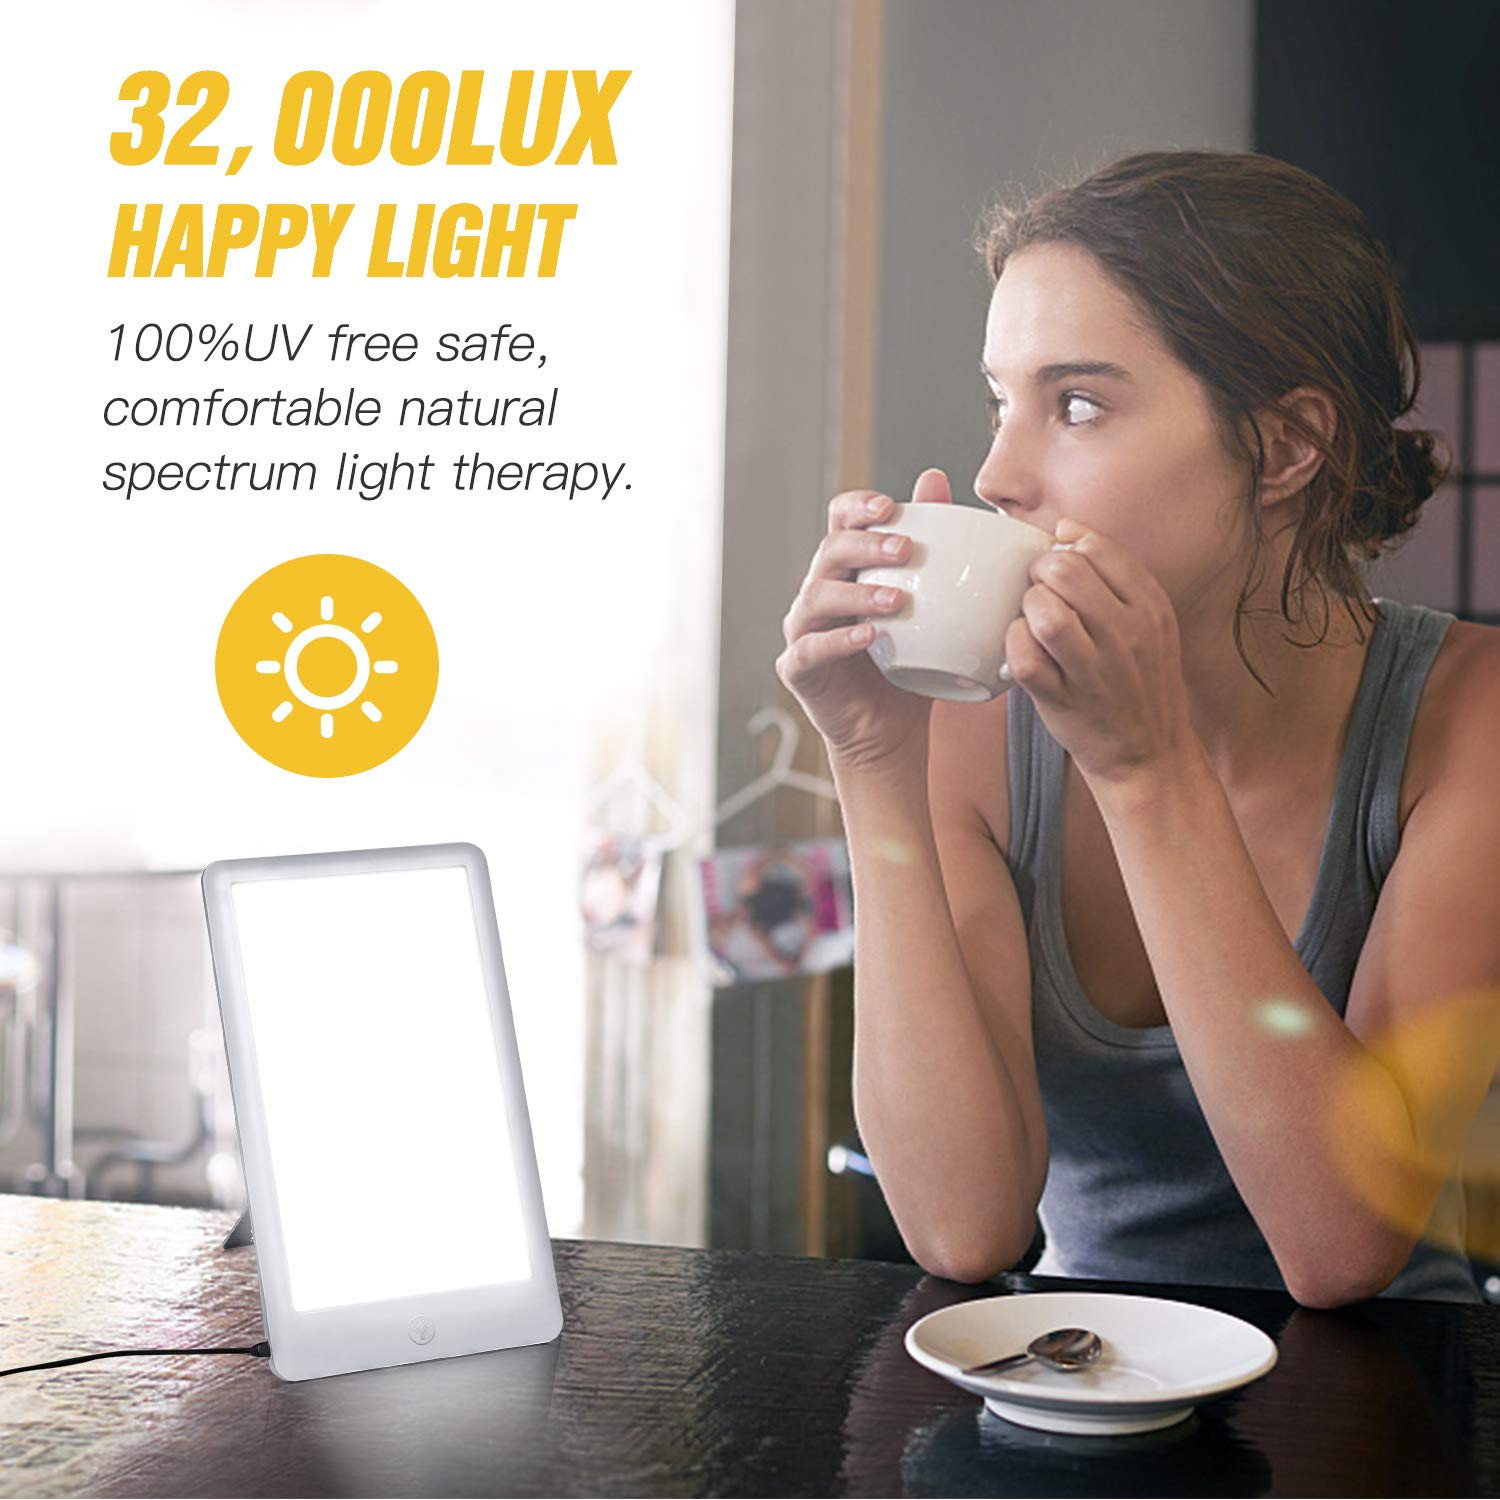 Light Therapy Lamp, 3 Brightness Levels Light Therapy Energy Box, Full Spectrum UV Free & Touch Control, Portable Sun Lamps for Happy Life, Max 32,000 LUX, White by sakobs (Image #2)